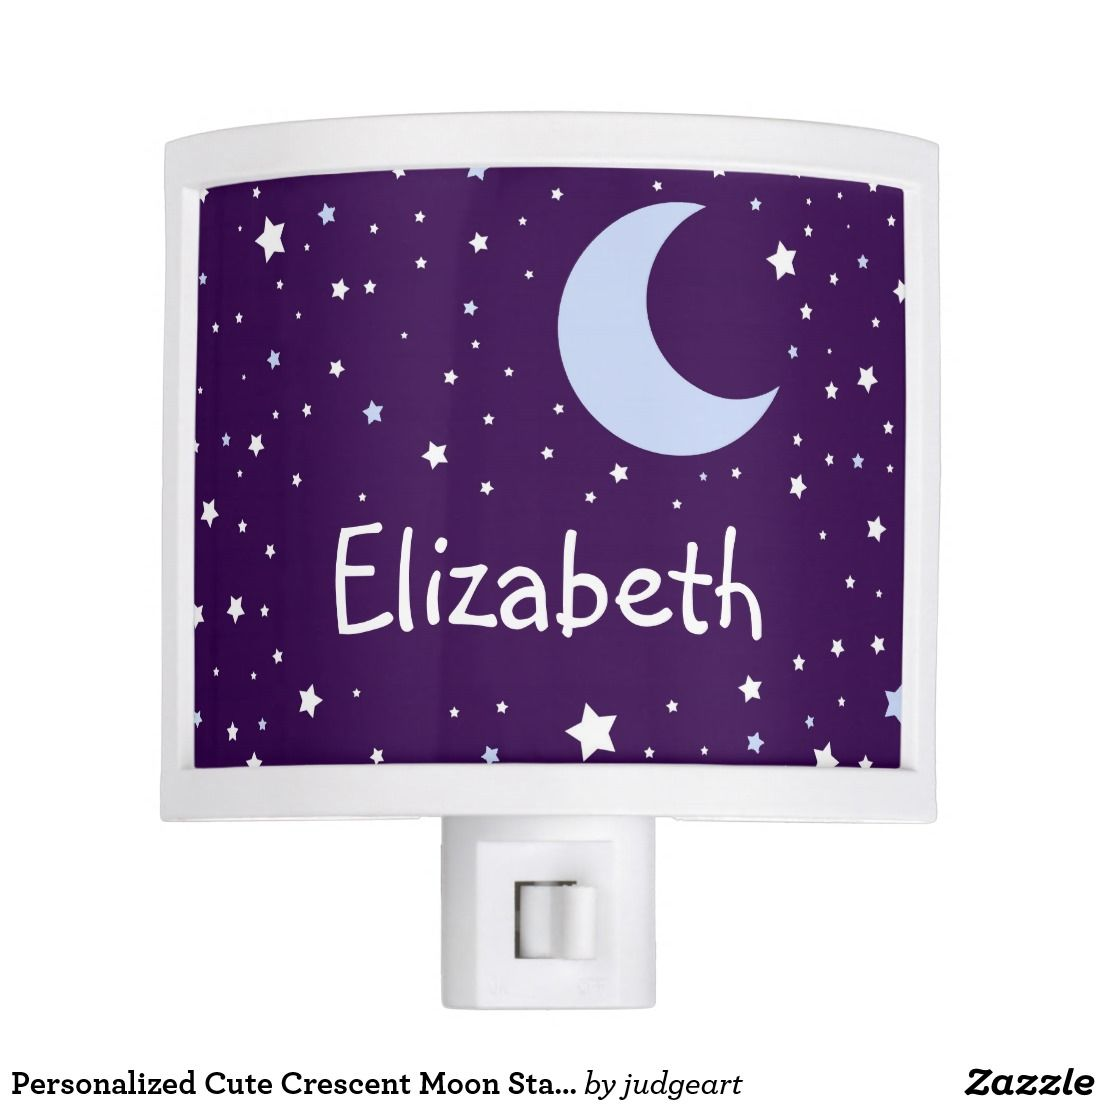 Personalized Cute Crescent Moon Starry Night Night Light Zazzle Com Starry Night Night Light Starry